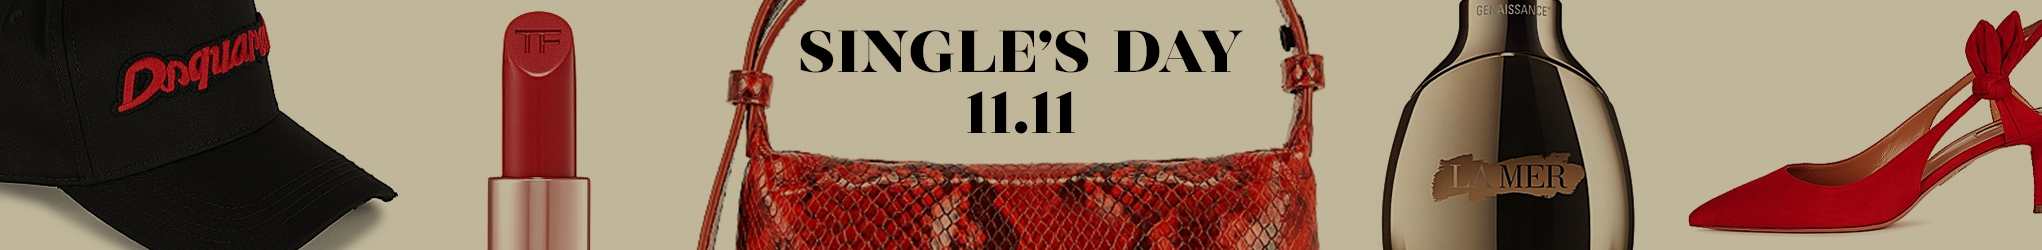 Singles' Day > Banner Desktop